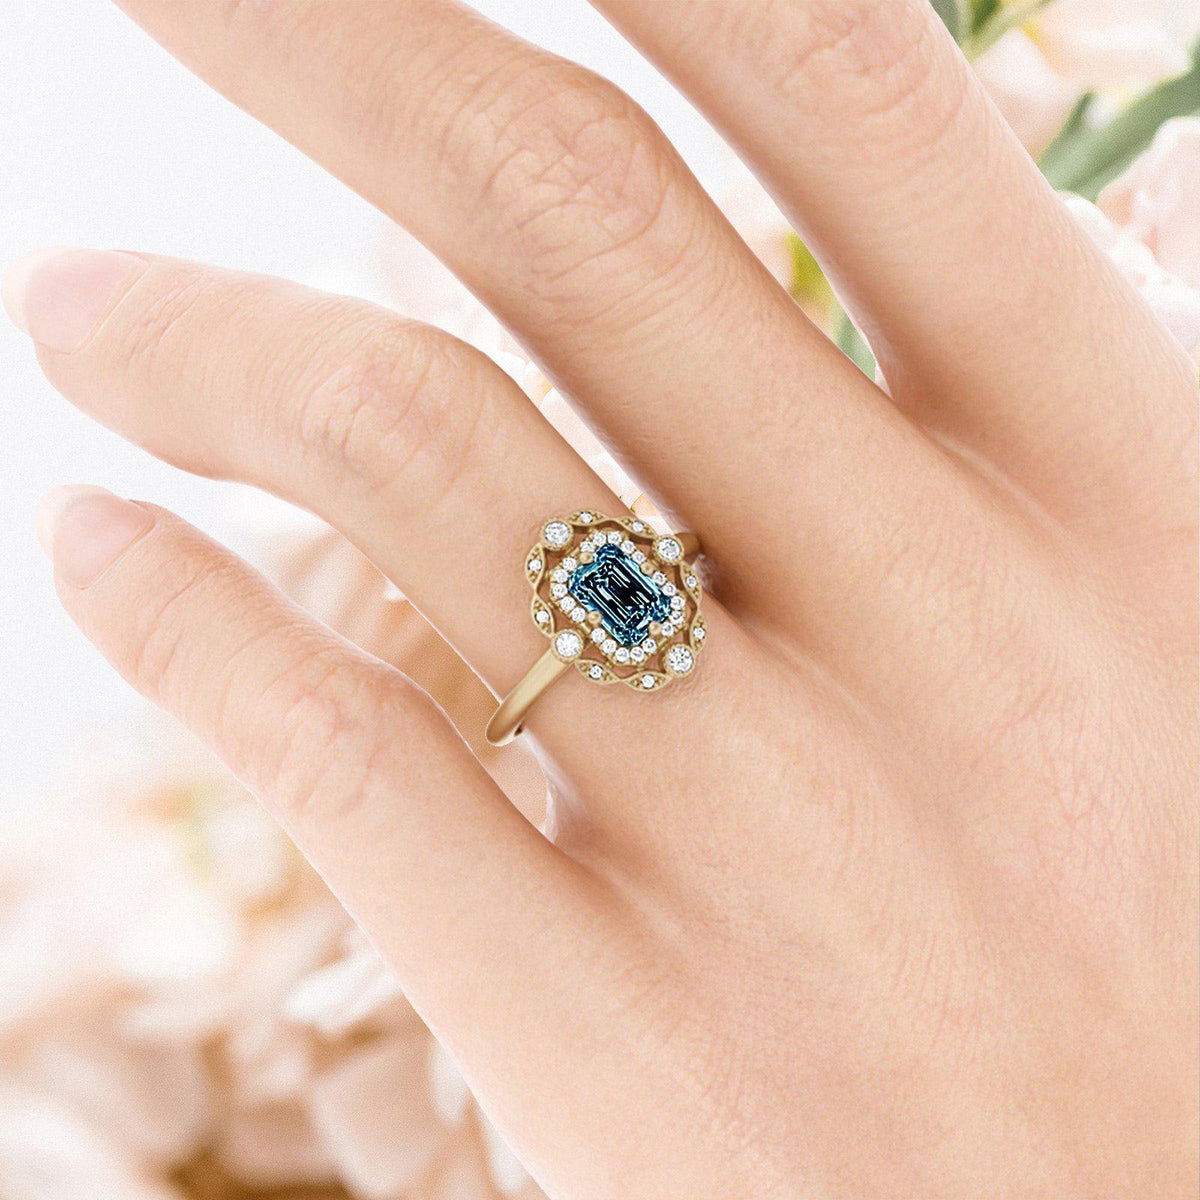 Mavis Montana Sapphire Ring with Double Halo On Womans Hand